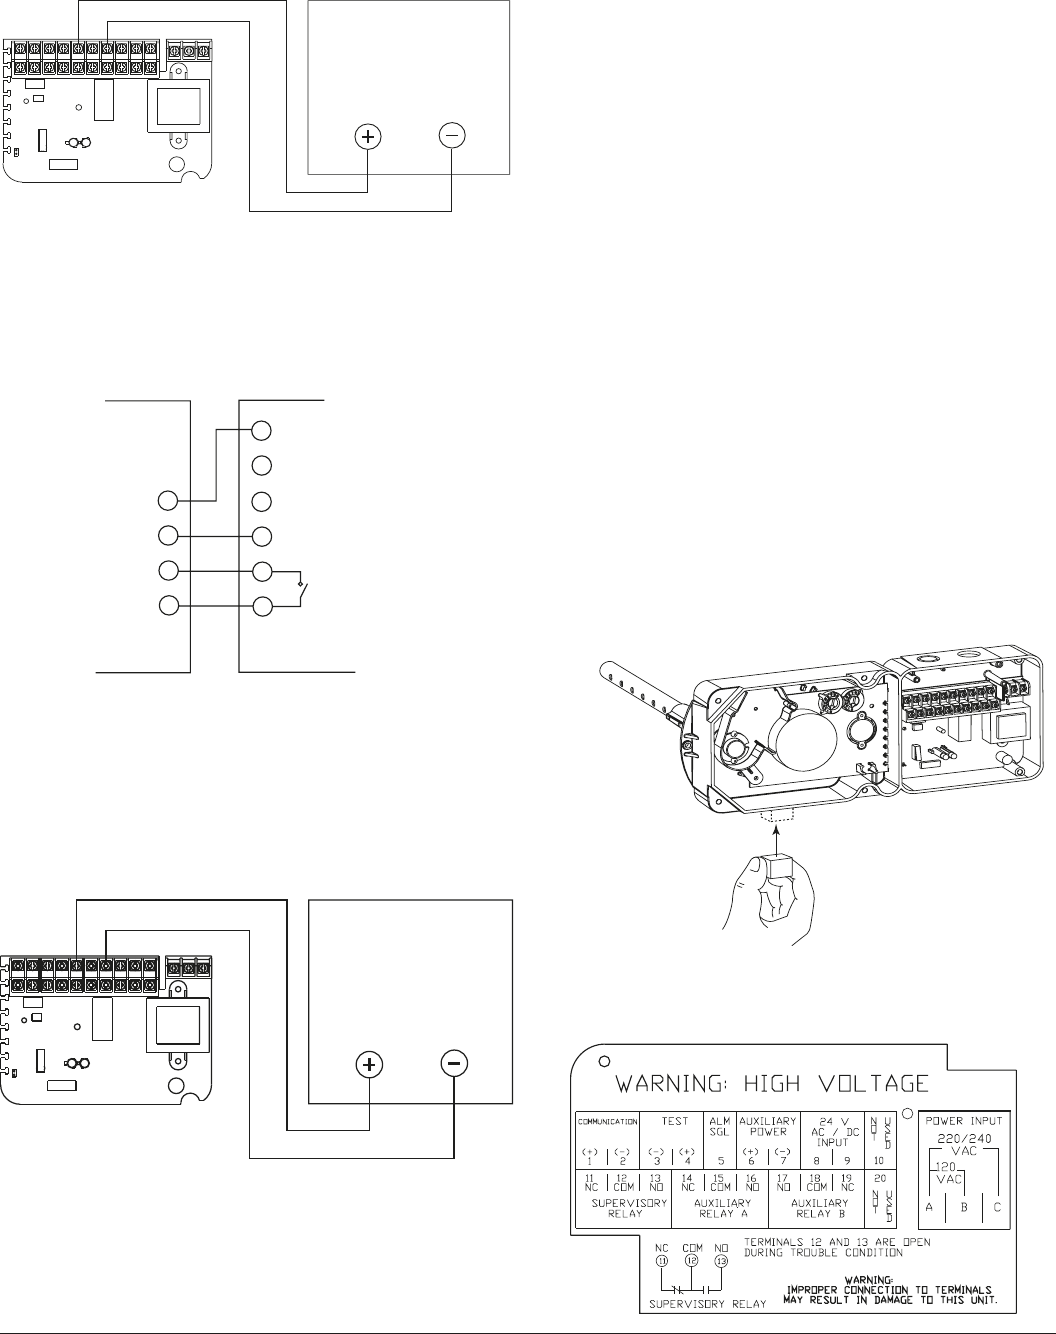 8483b56e 848c 4932 8d73 94b60800f0eb bg6 page 6 of system sensor smoke alarm dh200rpl user guide siemens duct detector wiring diagram at mifinder.co